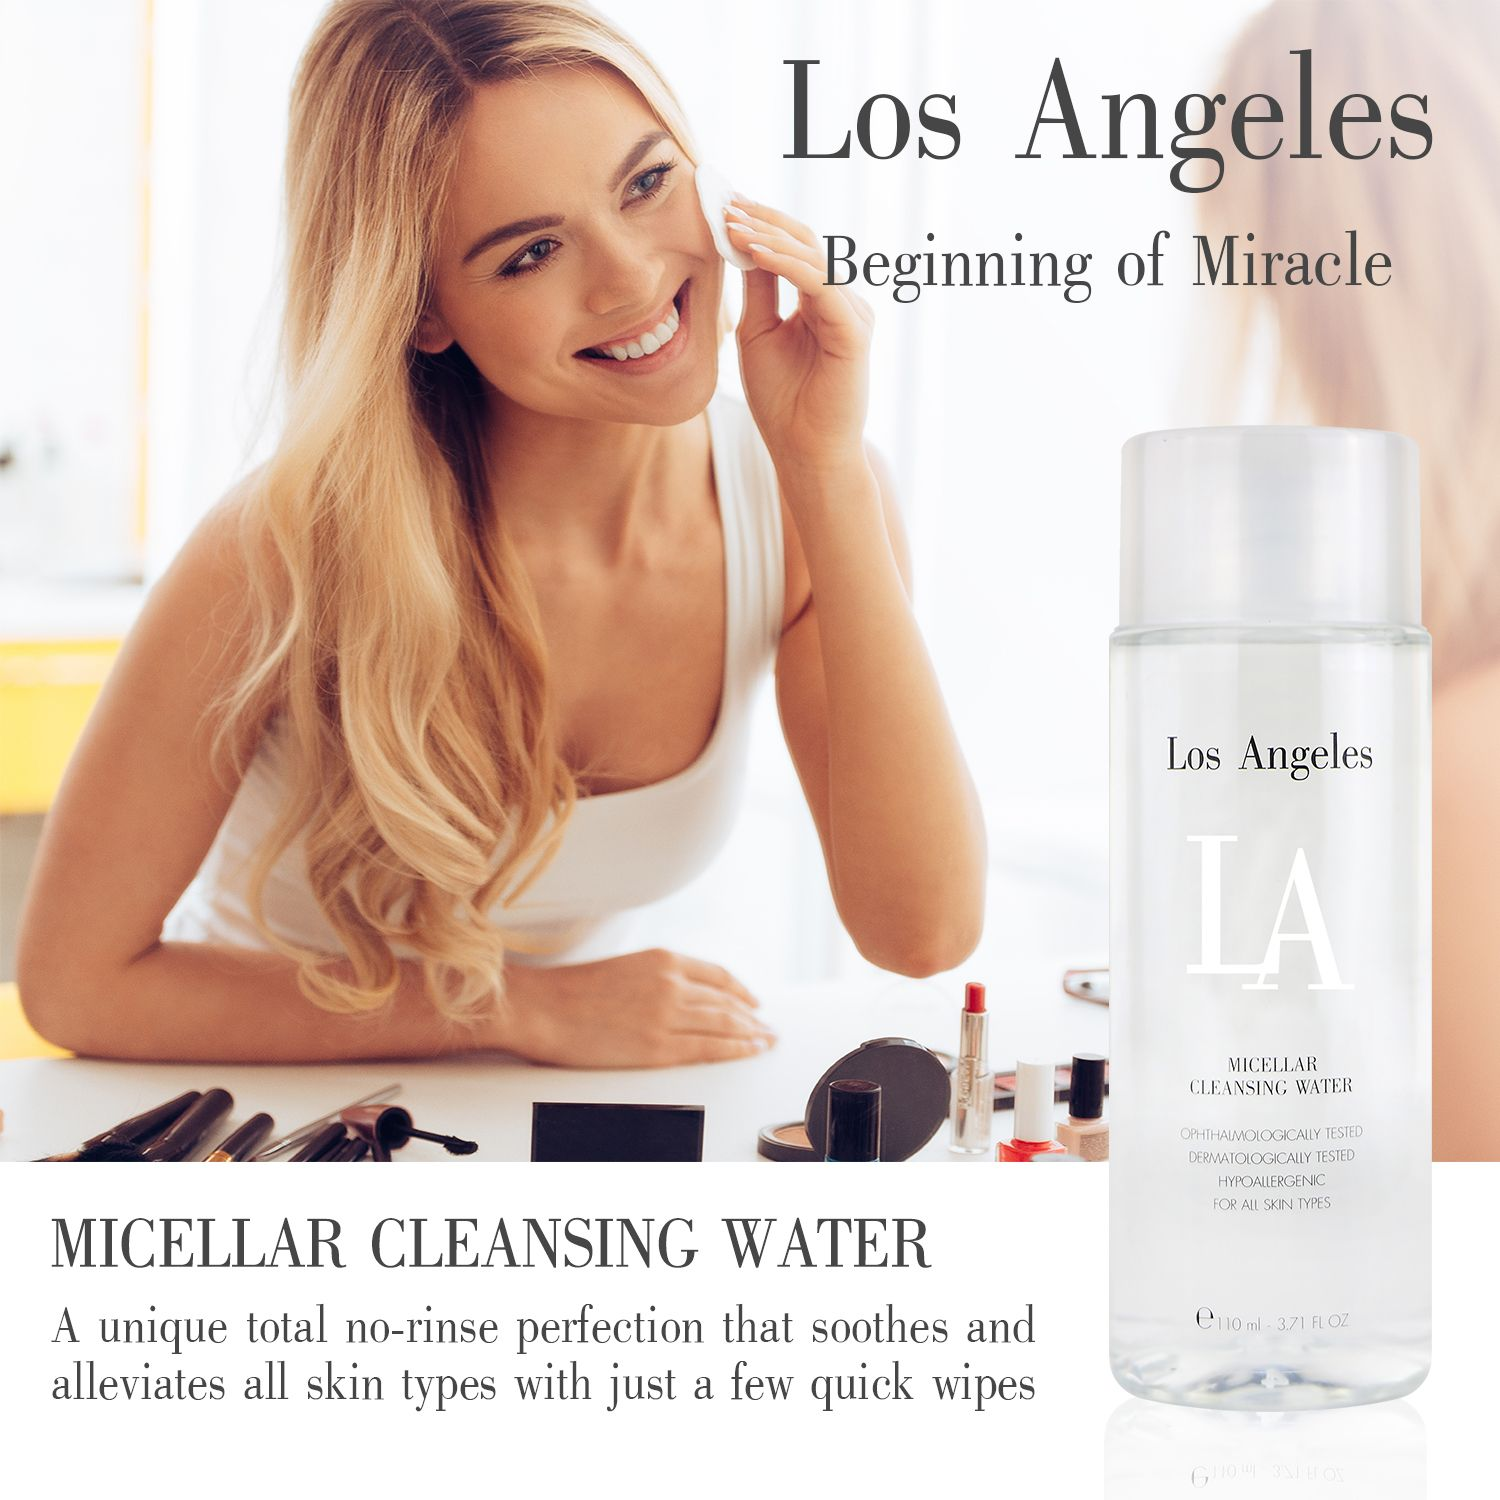 LA Los Angeles Micellar Cleansing Water is an efficient